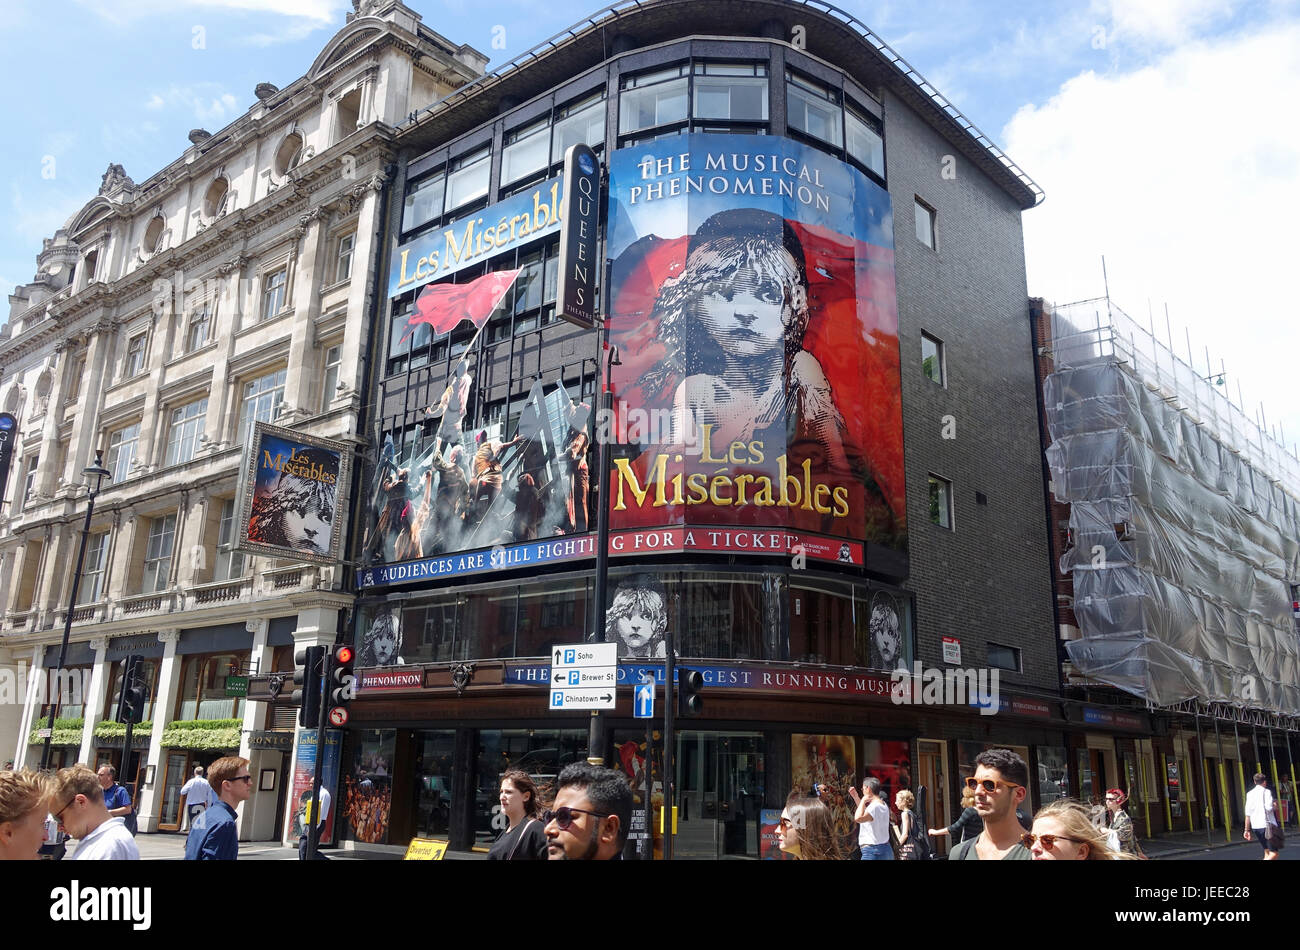 Front view of the Queen's Theatre on Shaftesbury Avenue in London - Stock Image